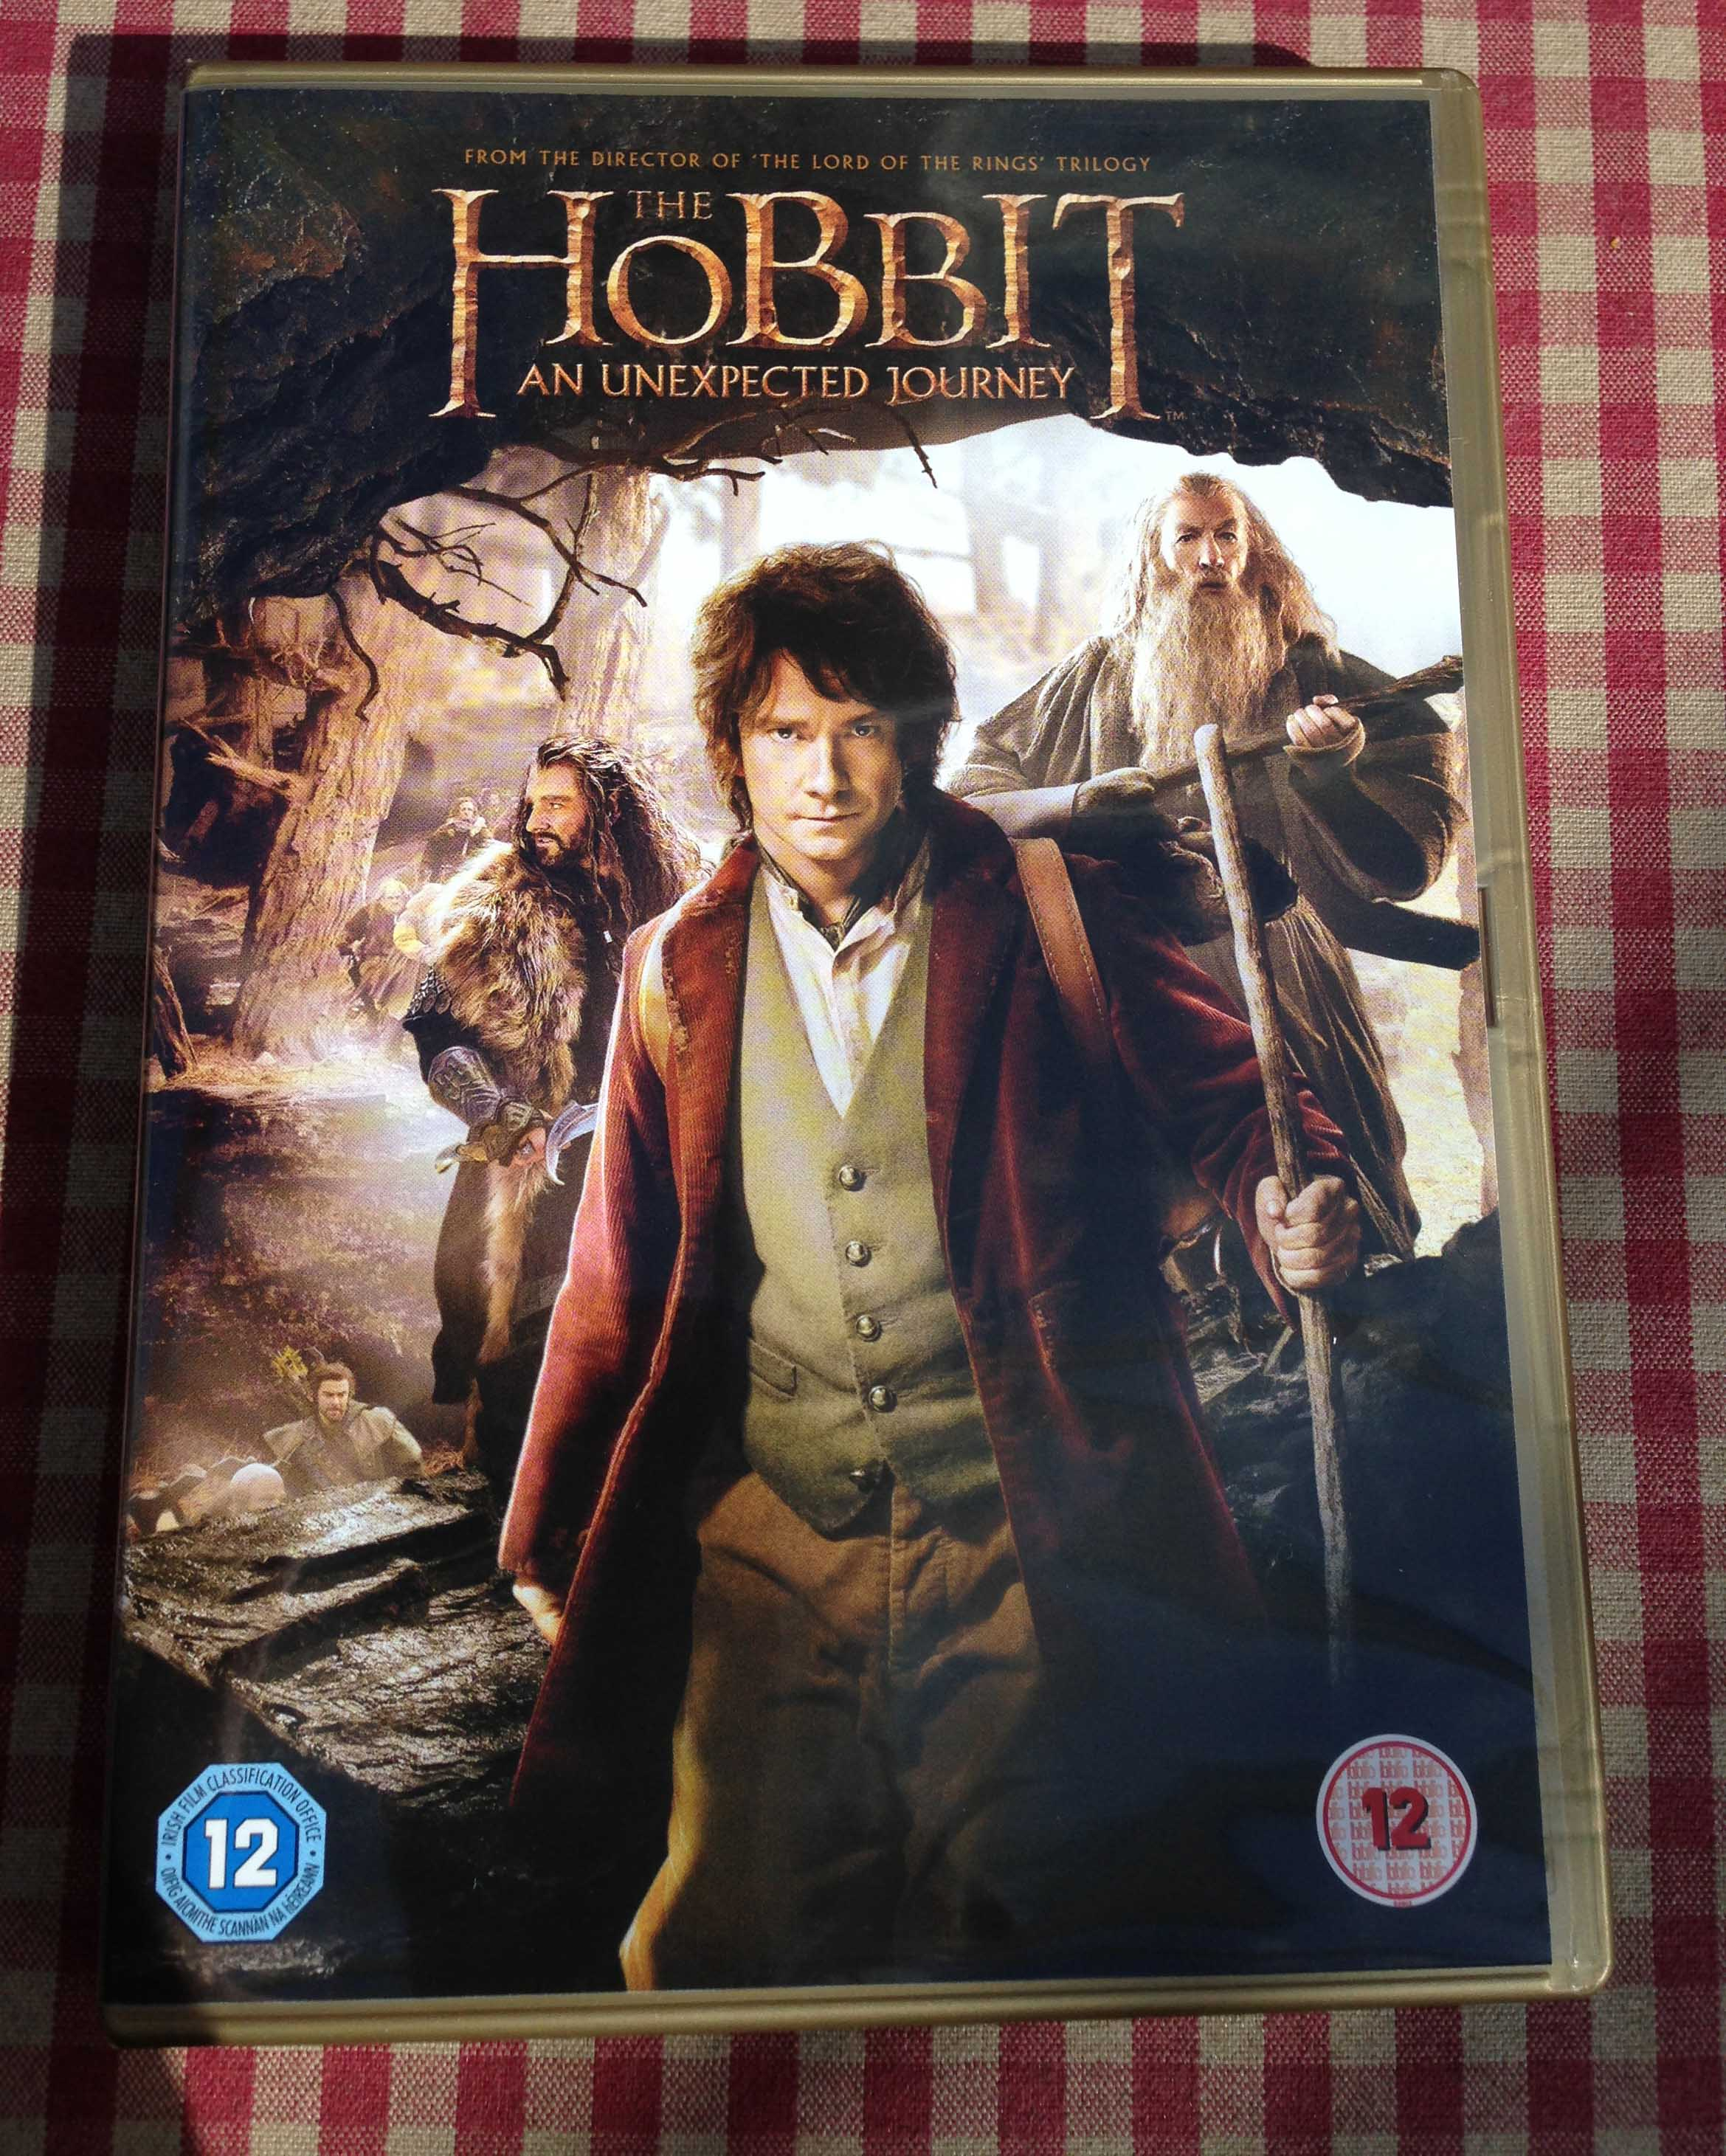 on the hobbit sandysview it s an essay about how you view things can affect how you see things it s written off the back of the recent release of the hobbit